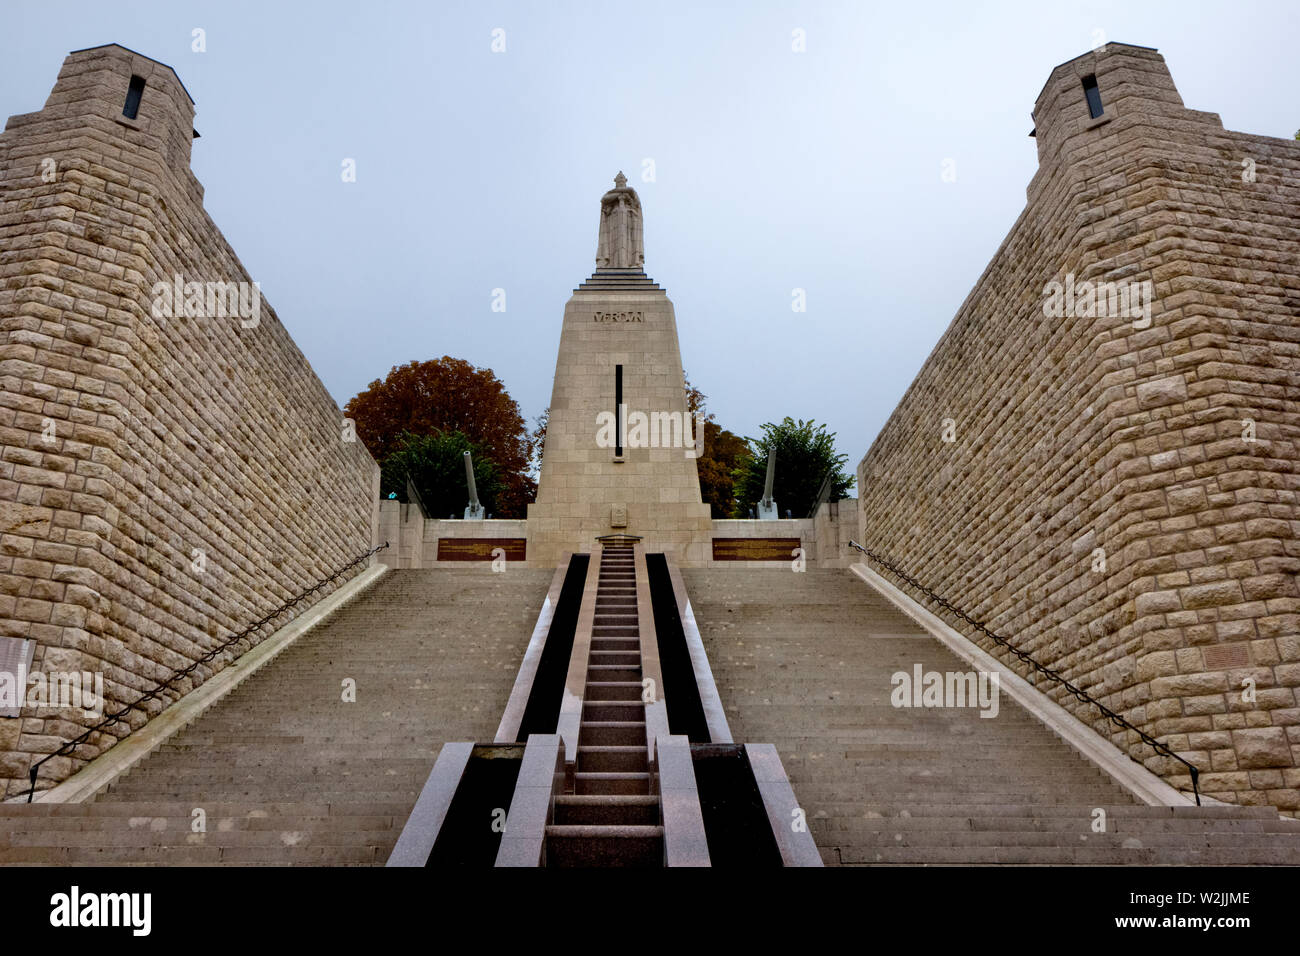 Verdun: Charlemagne at the summit of the 'Monument to the victory at Verdun'. This monument commemorates the French victory of the battle of Verdun. - Stock Image